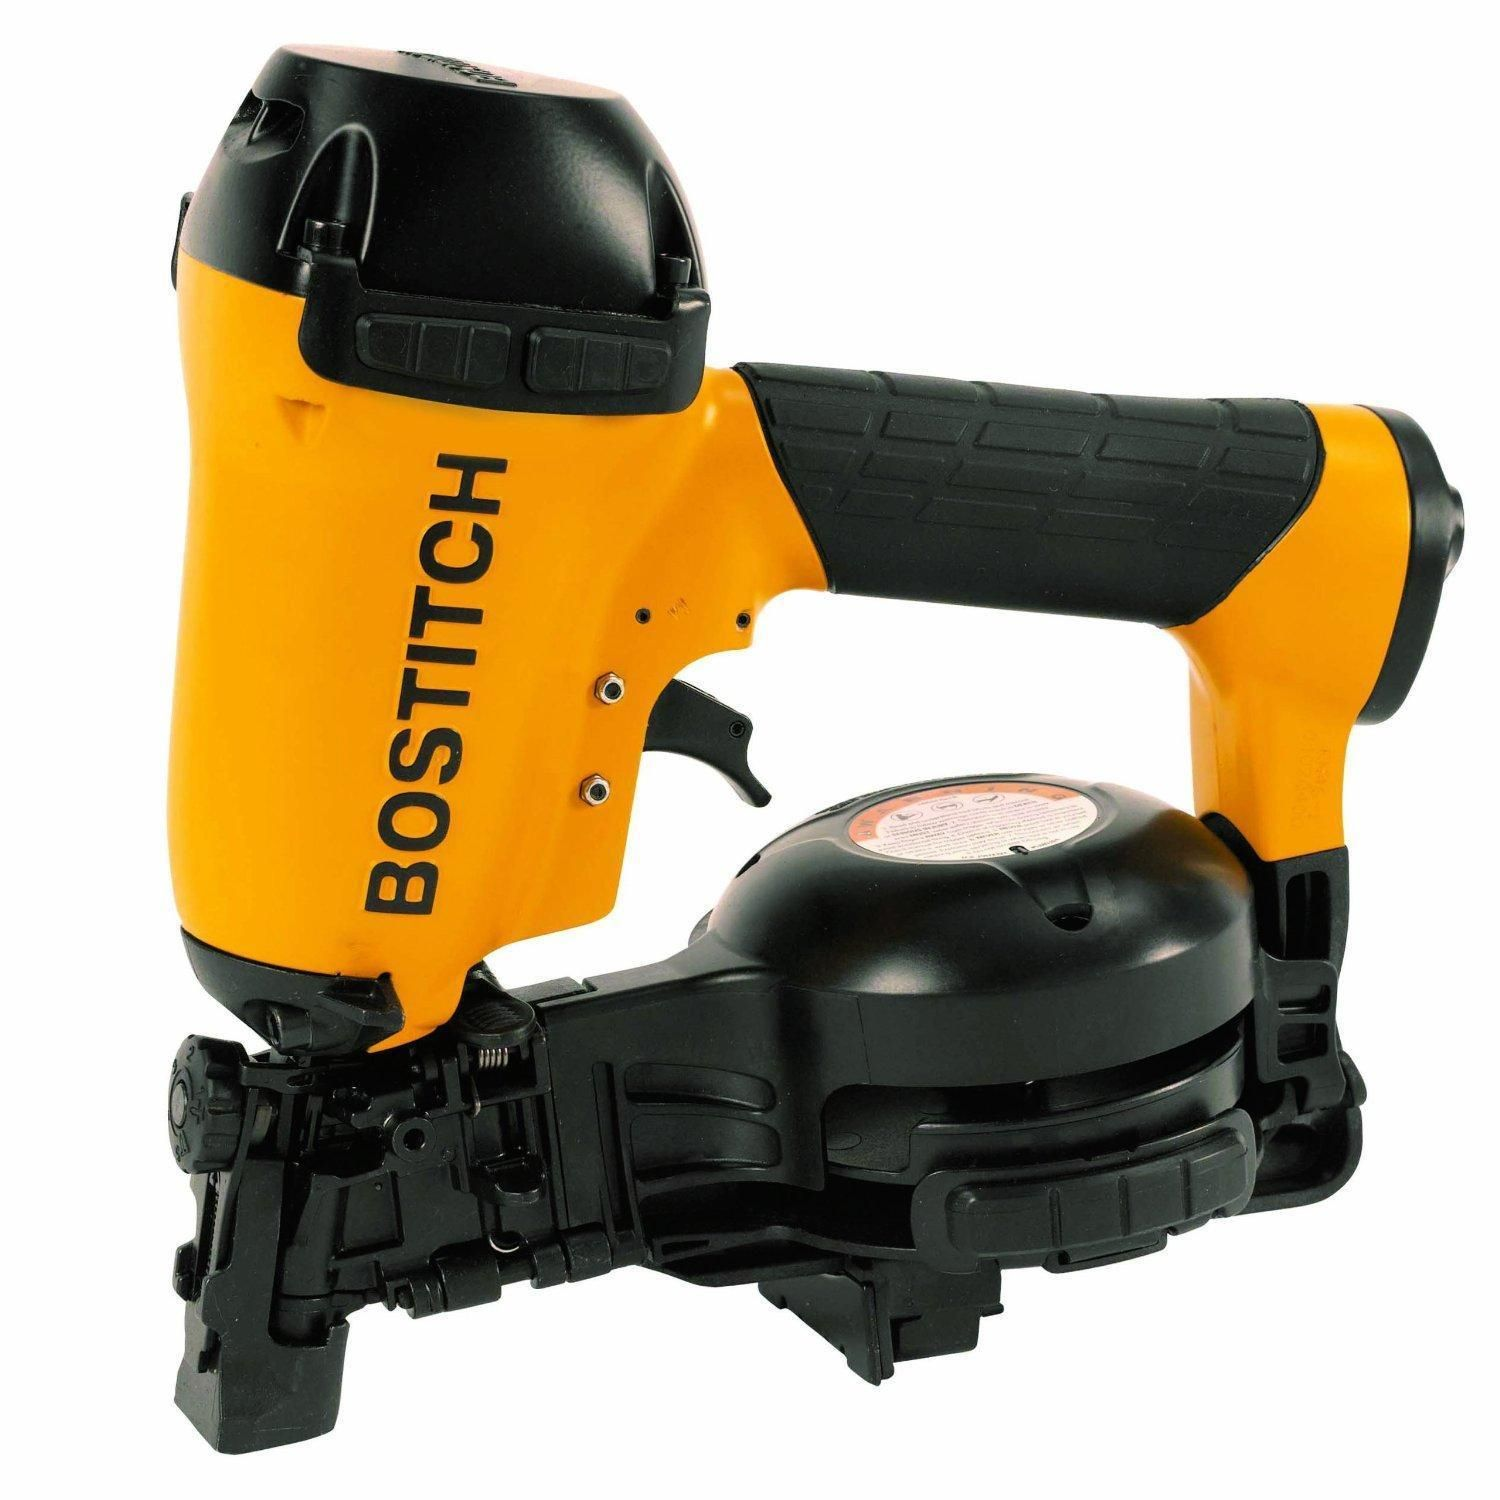 Details about Bostitch RN461 Coil Roofing Nailer